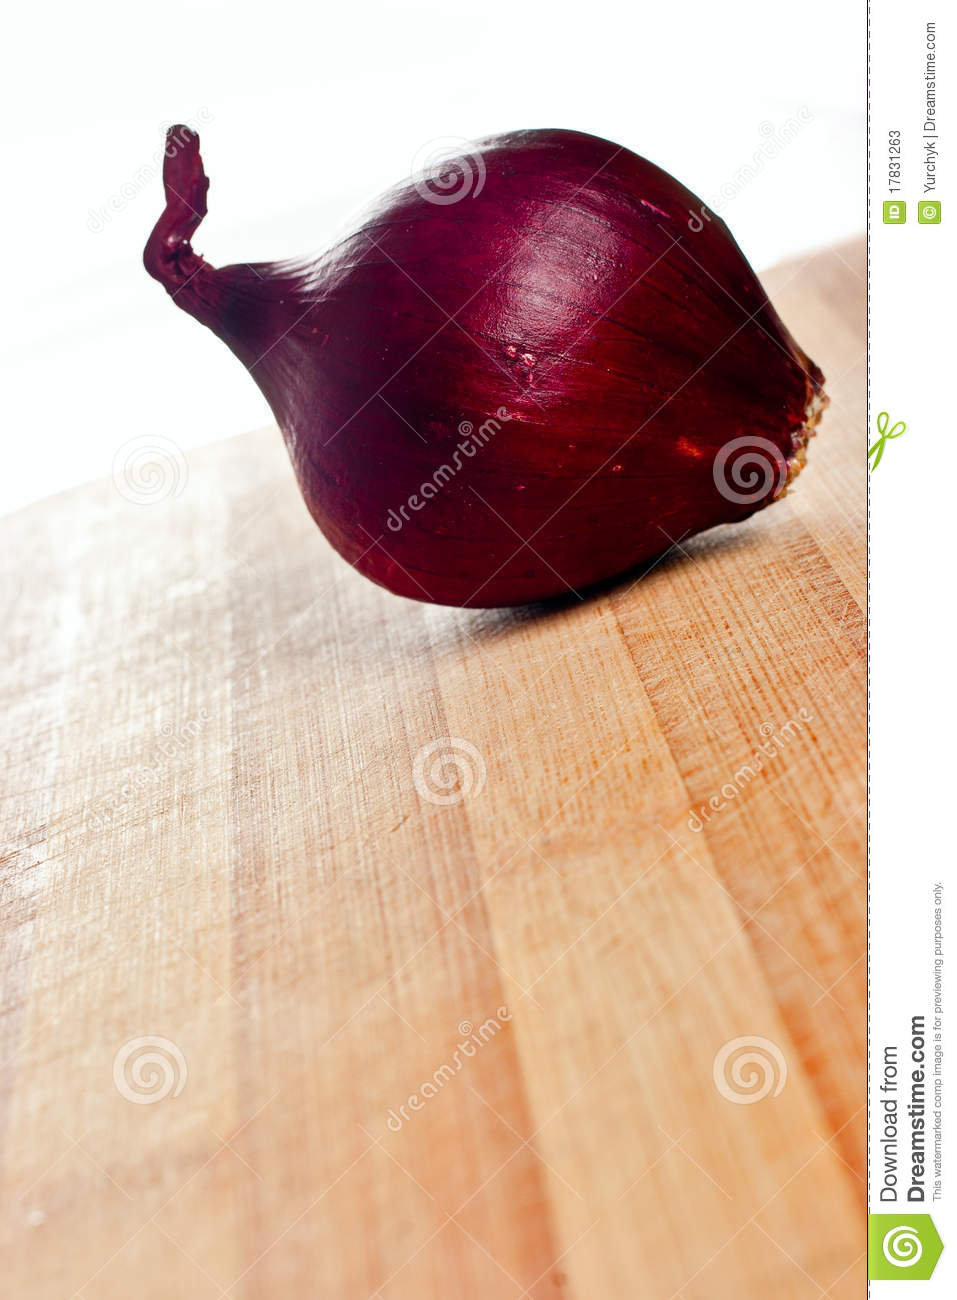 Whole Red Onion On Chopping Board Stock Photos - Image ...